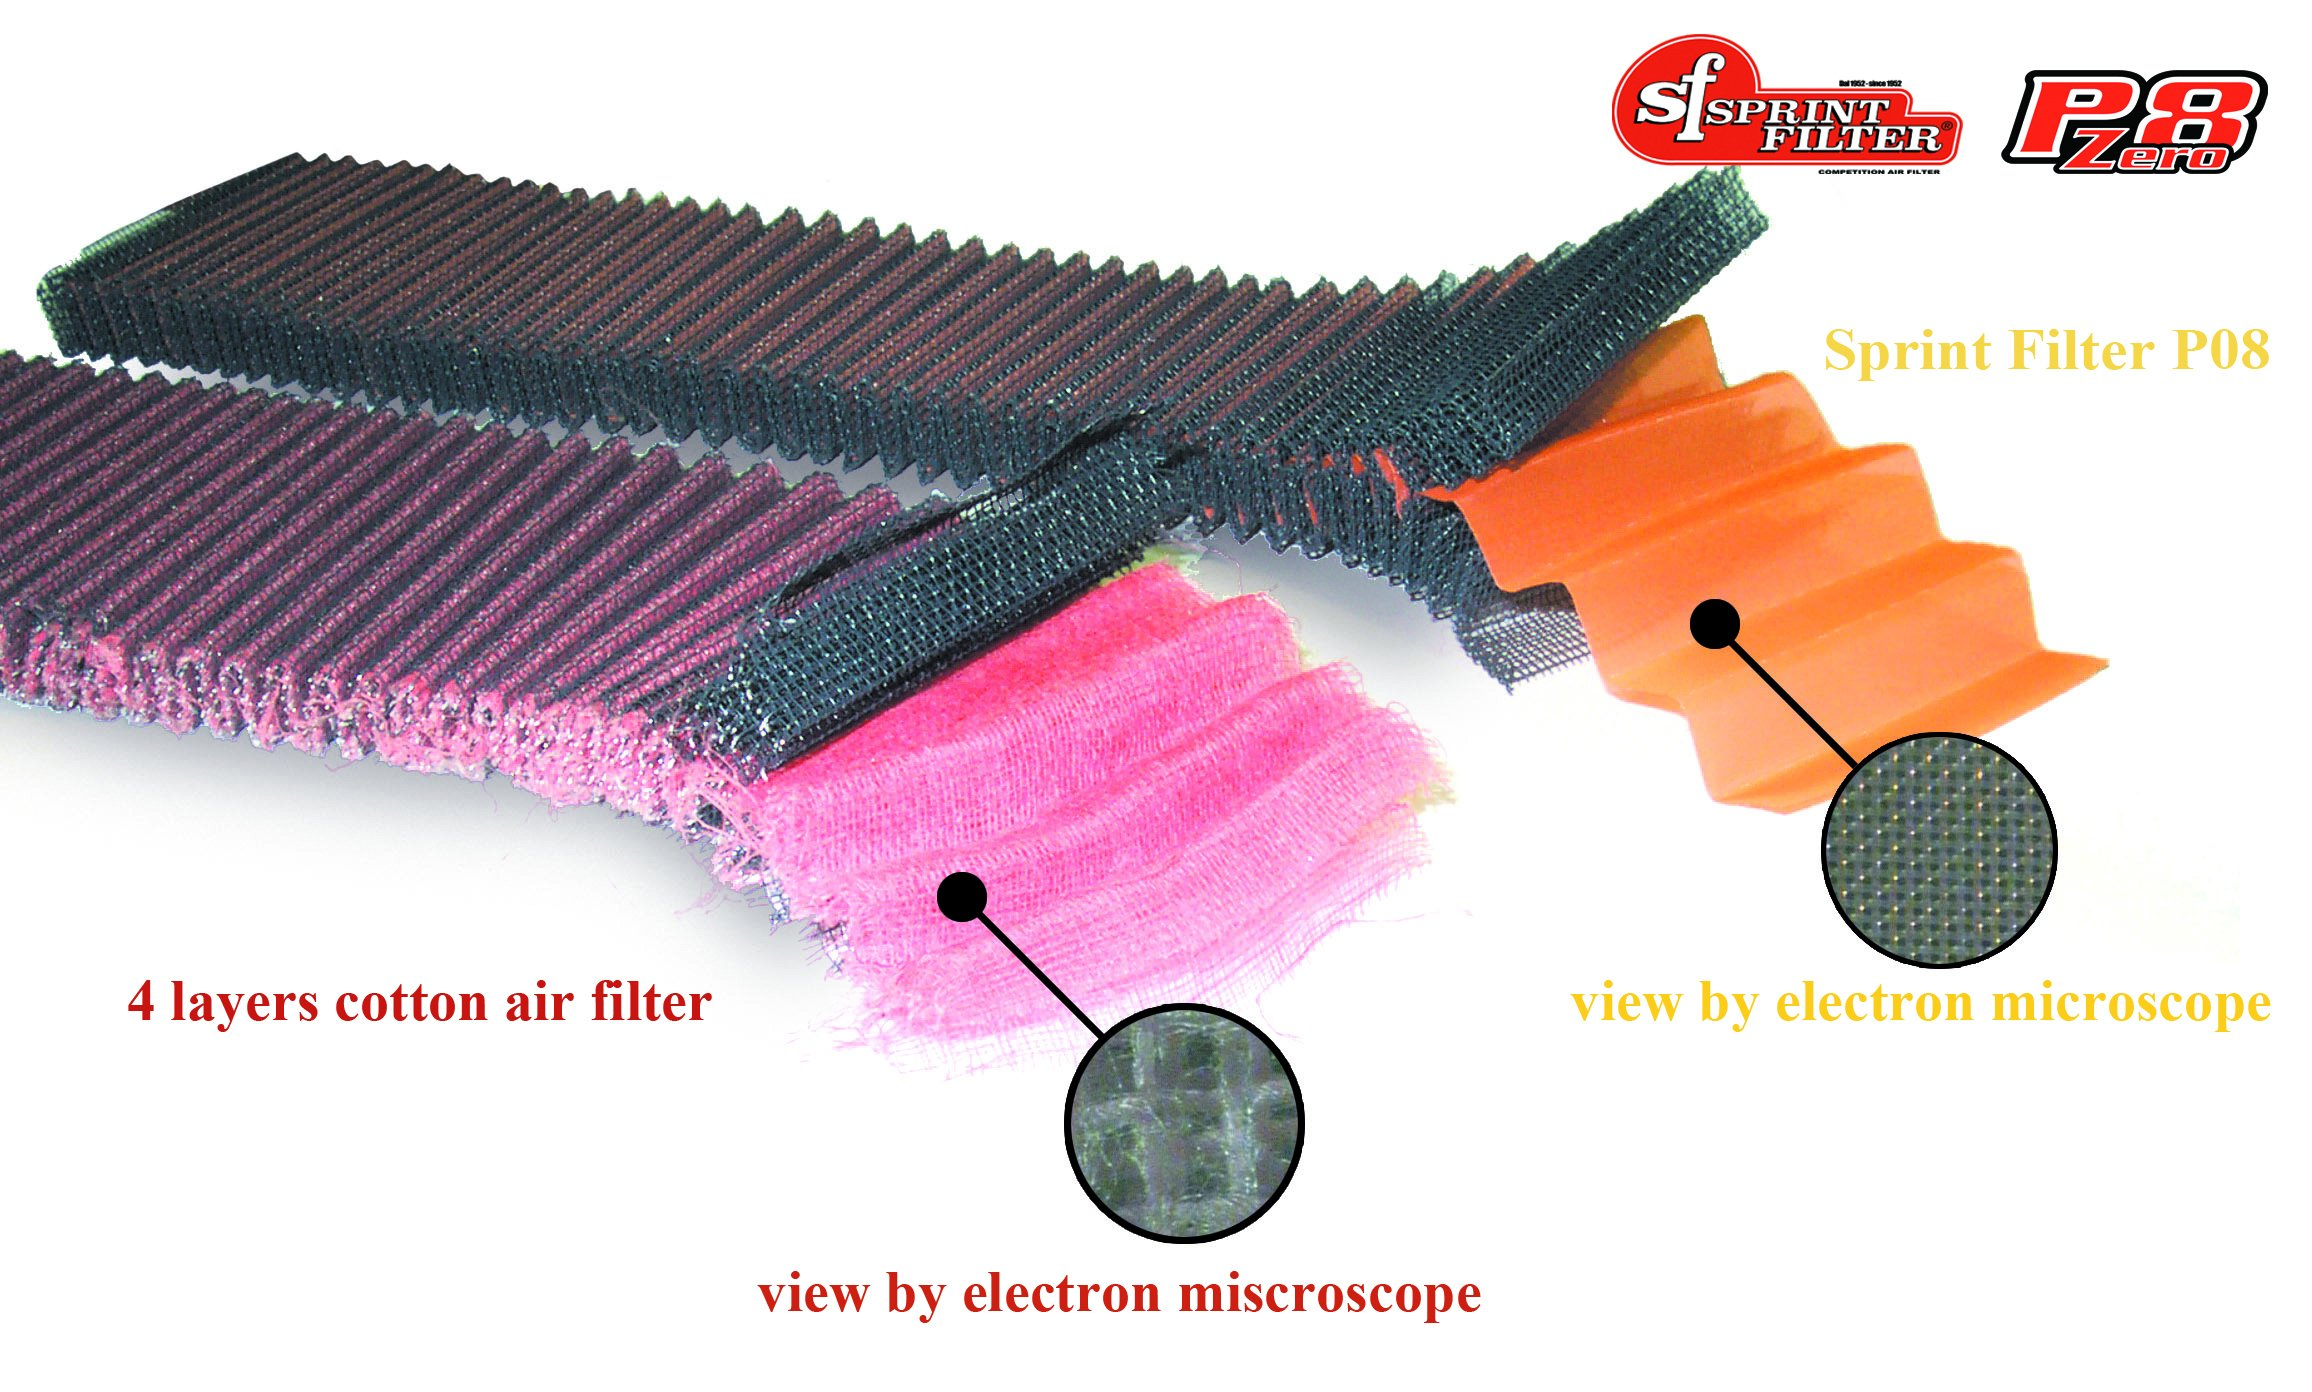 Sprint Filter Honda P08 Air Filter